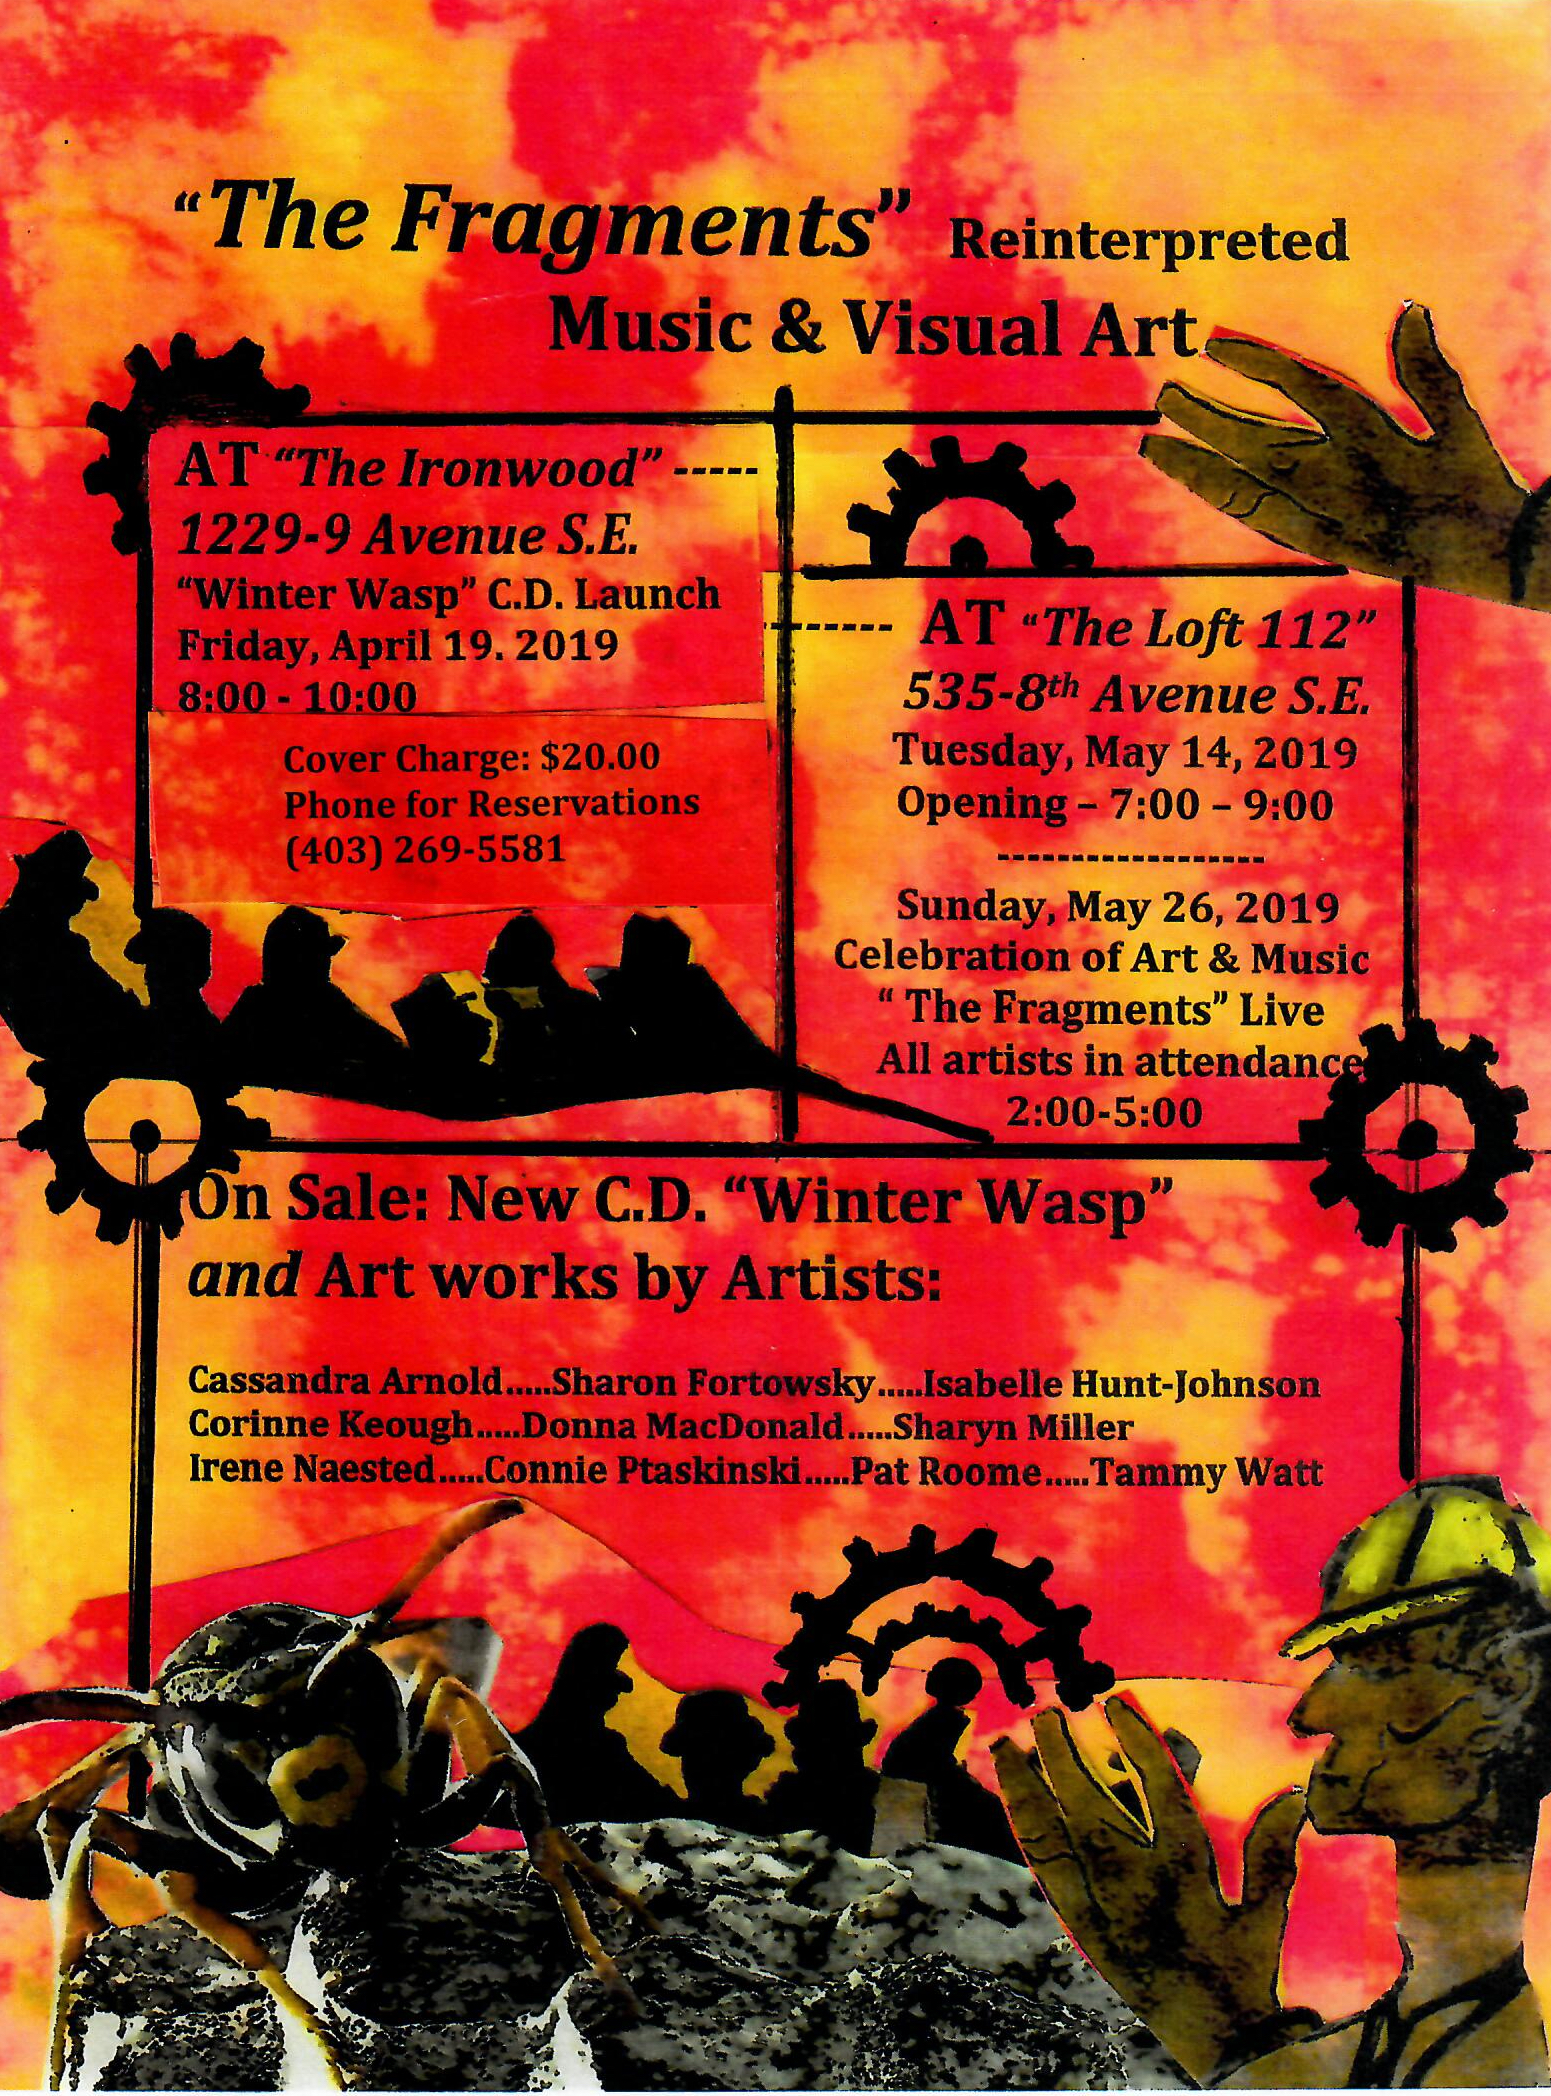 The Fragments Reinterpreted: Music and Art Events at the Loft 112, May, 14 & 26